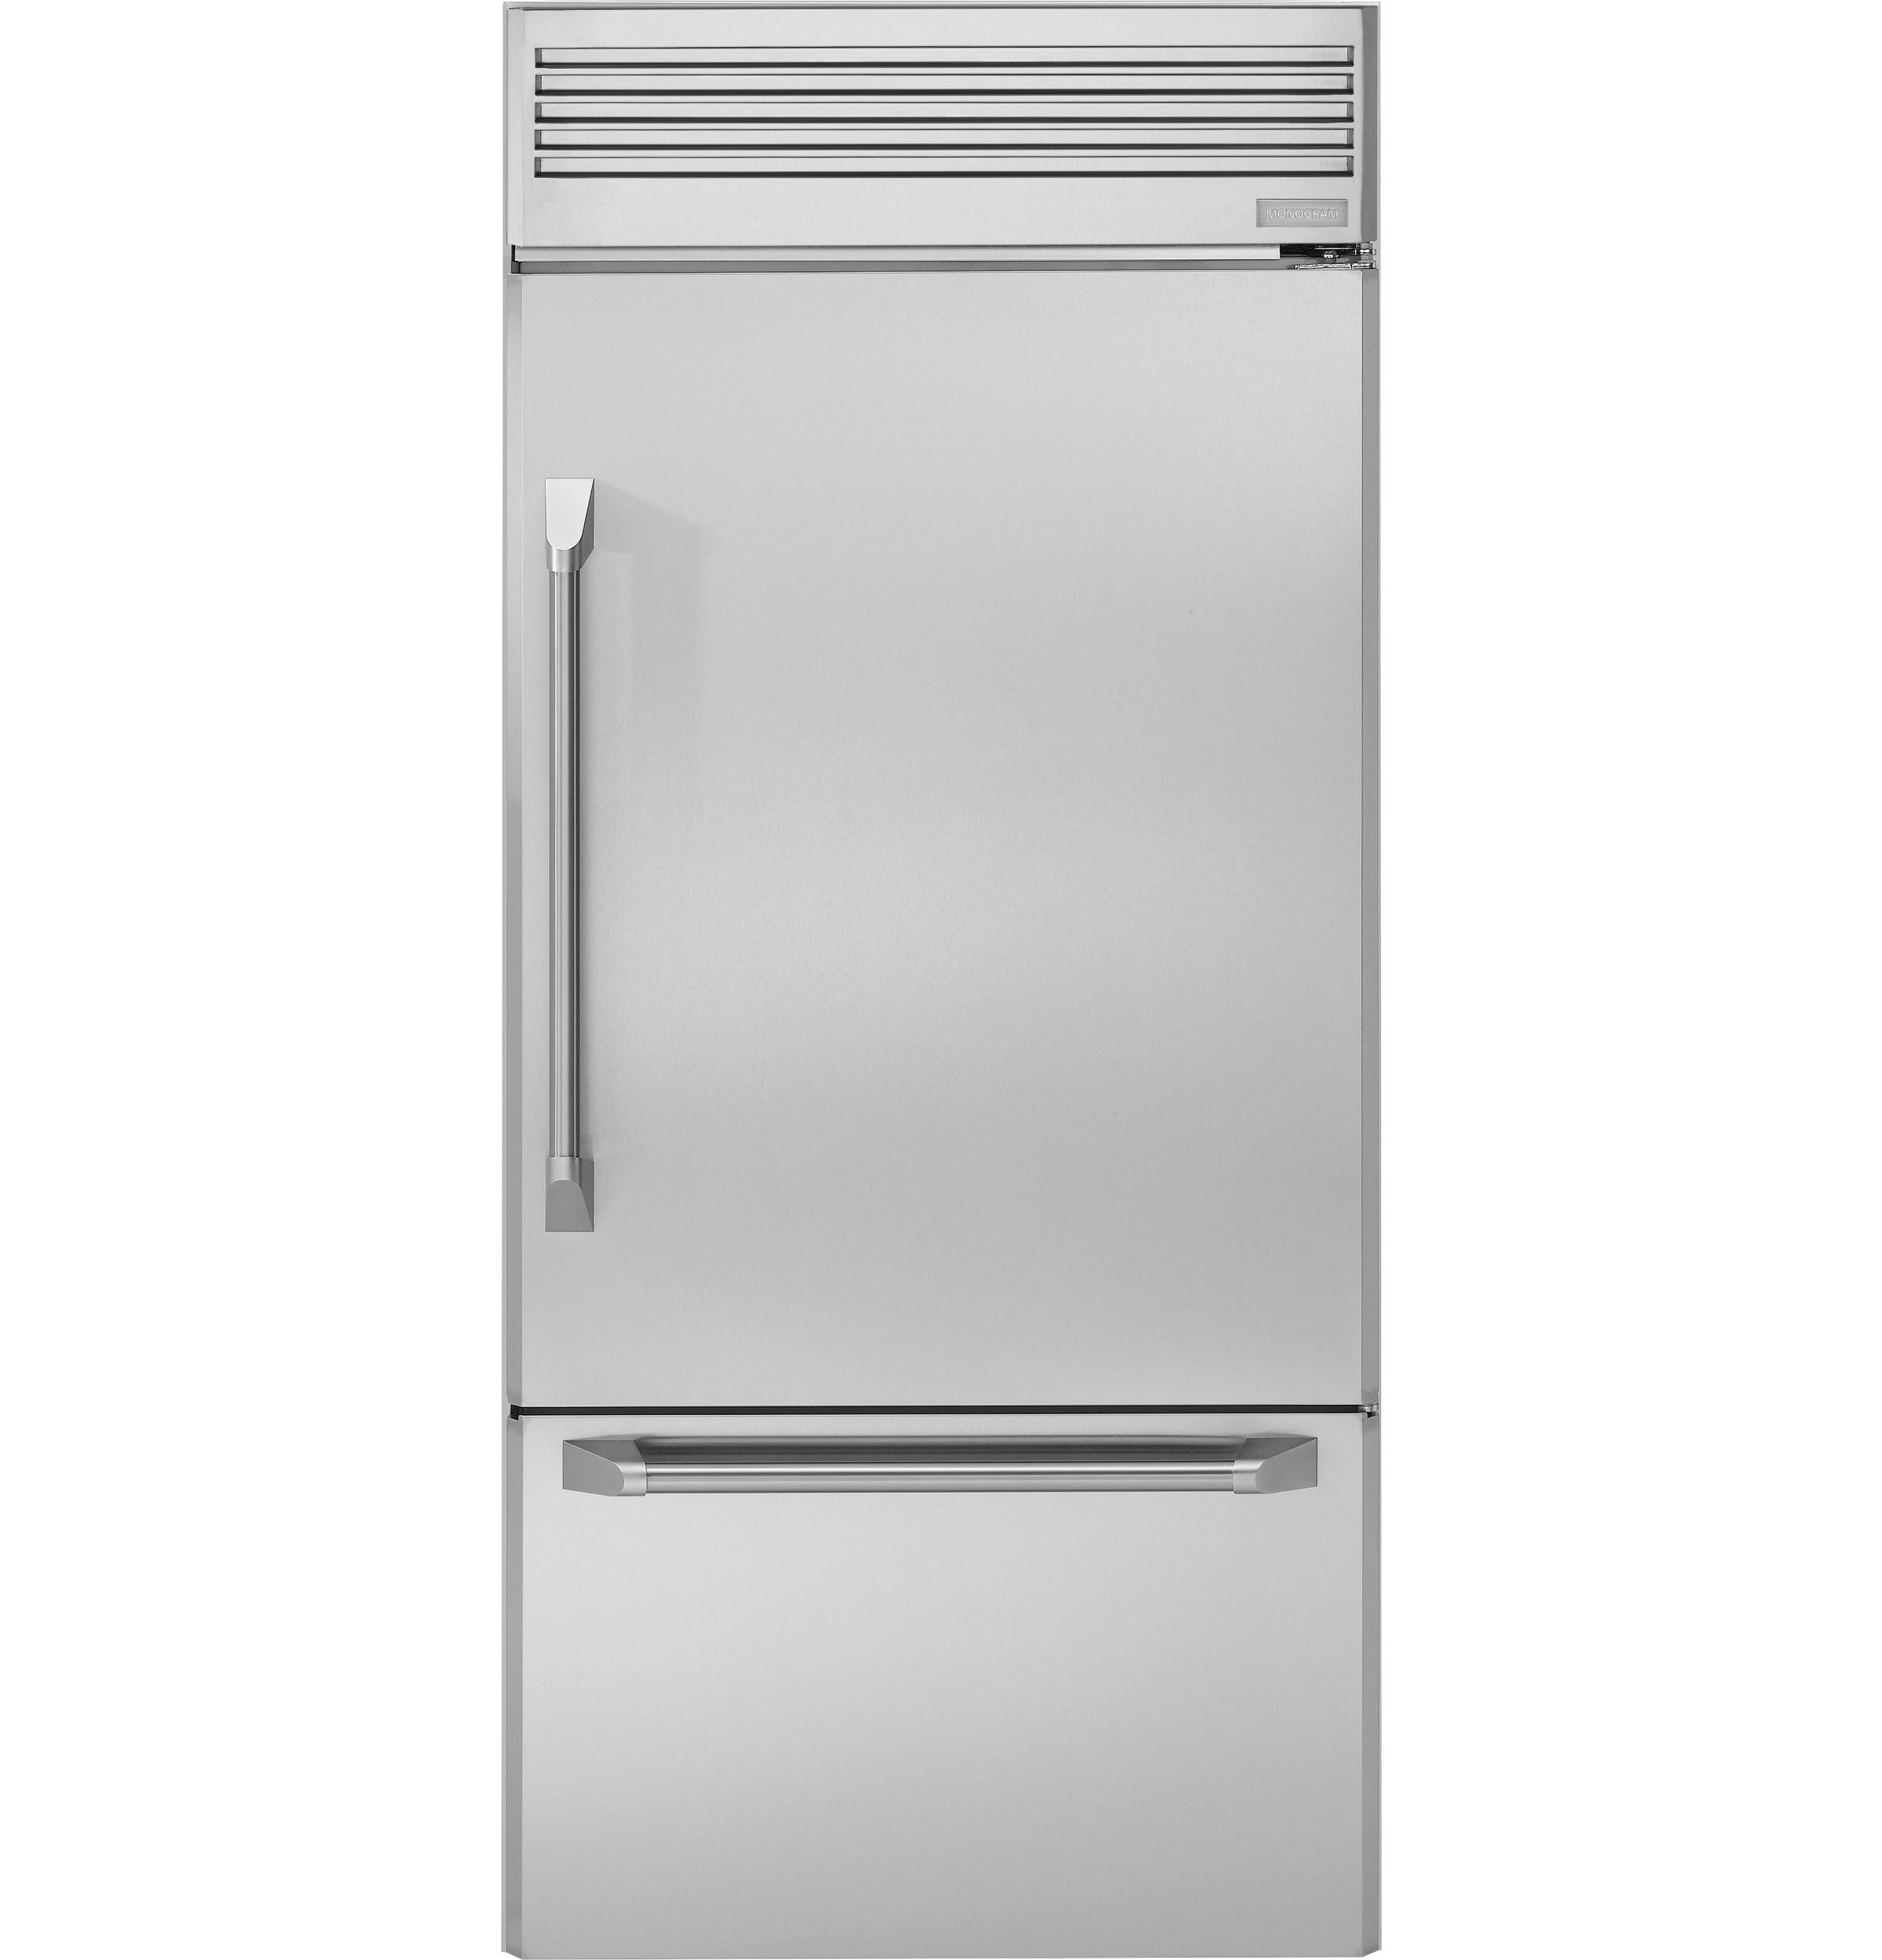 refrigerator production and cost Find great deals on ebay for refrigerator replacement doors and refrigerator door shop with confidence.